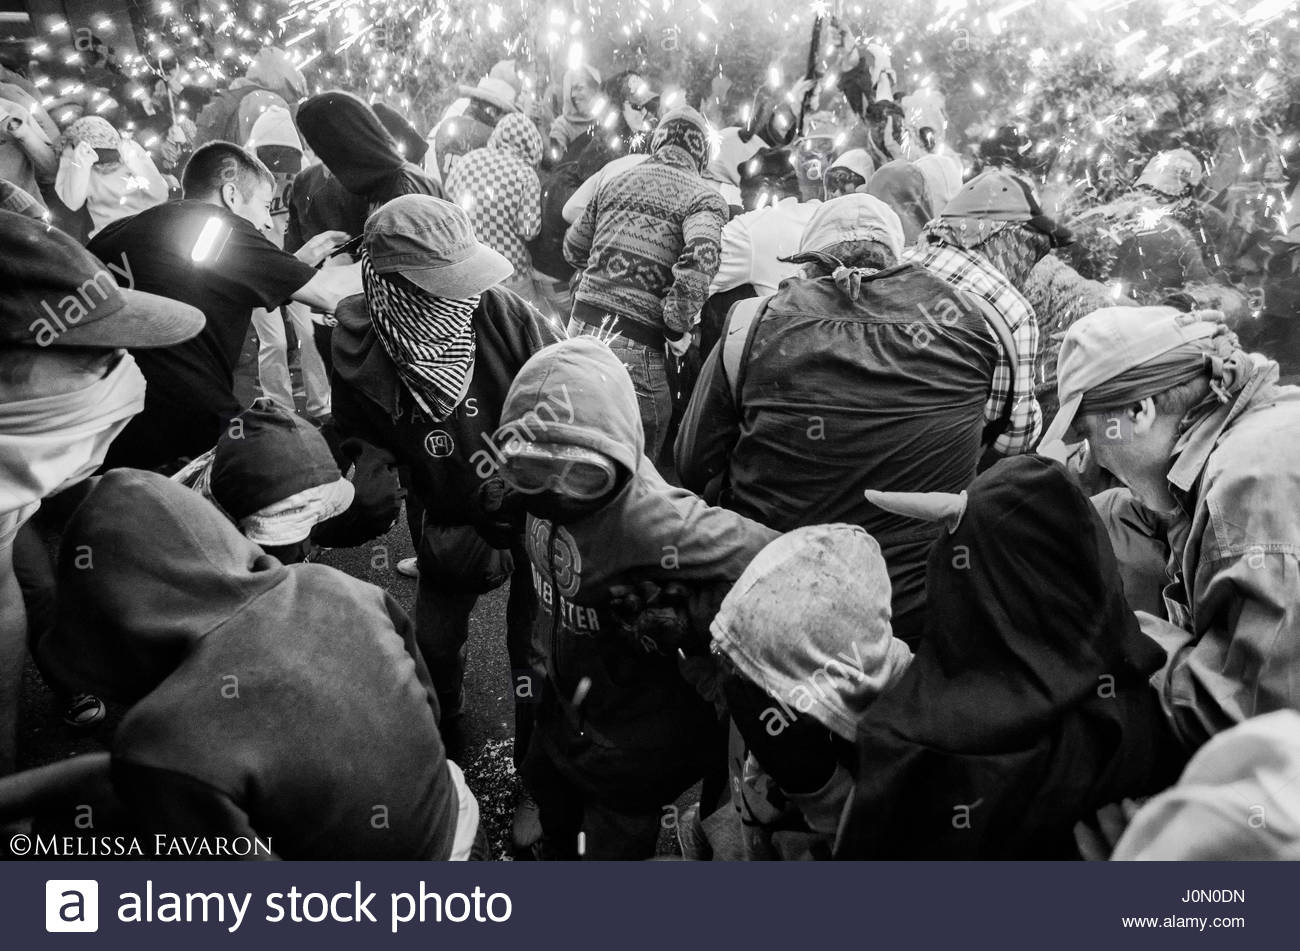 Violent May Day protests at No Expo anti-capitalist demonstration Students are protesting against the Expo on May - Stock Image